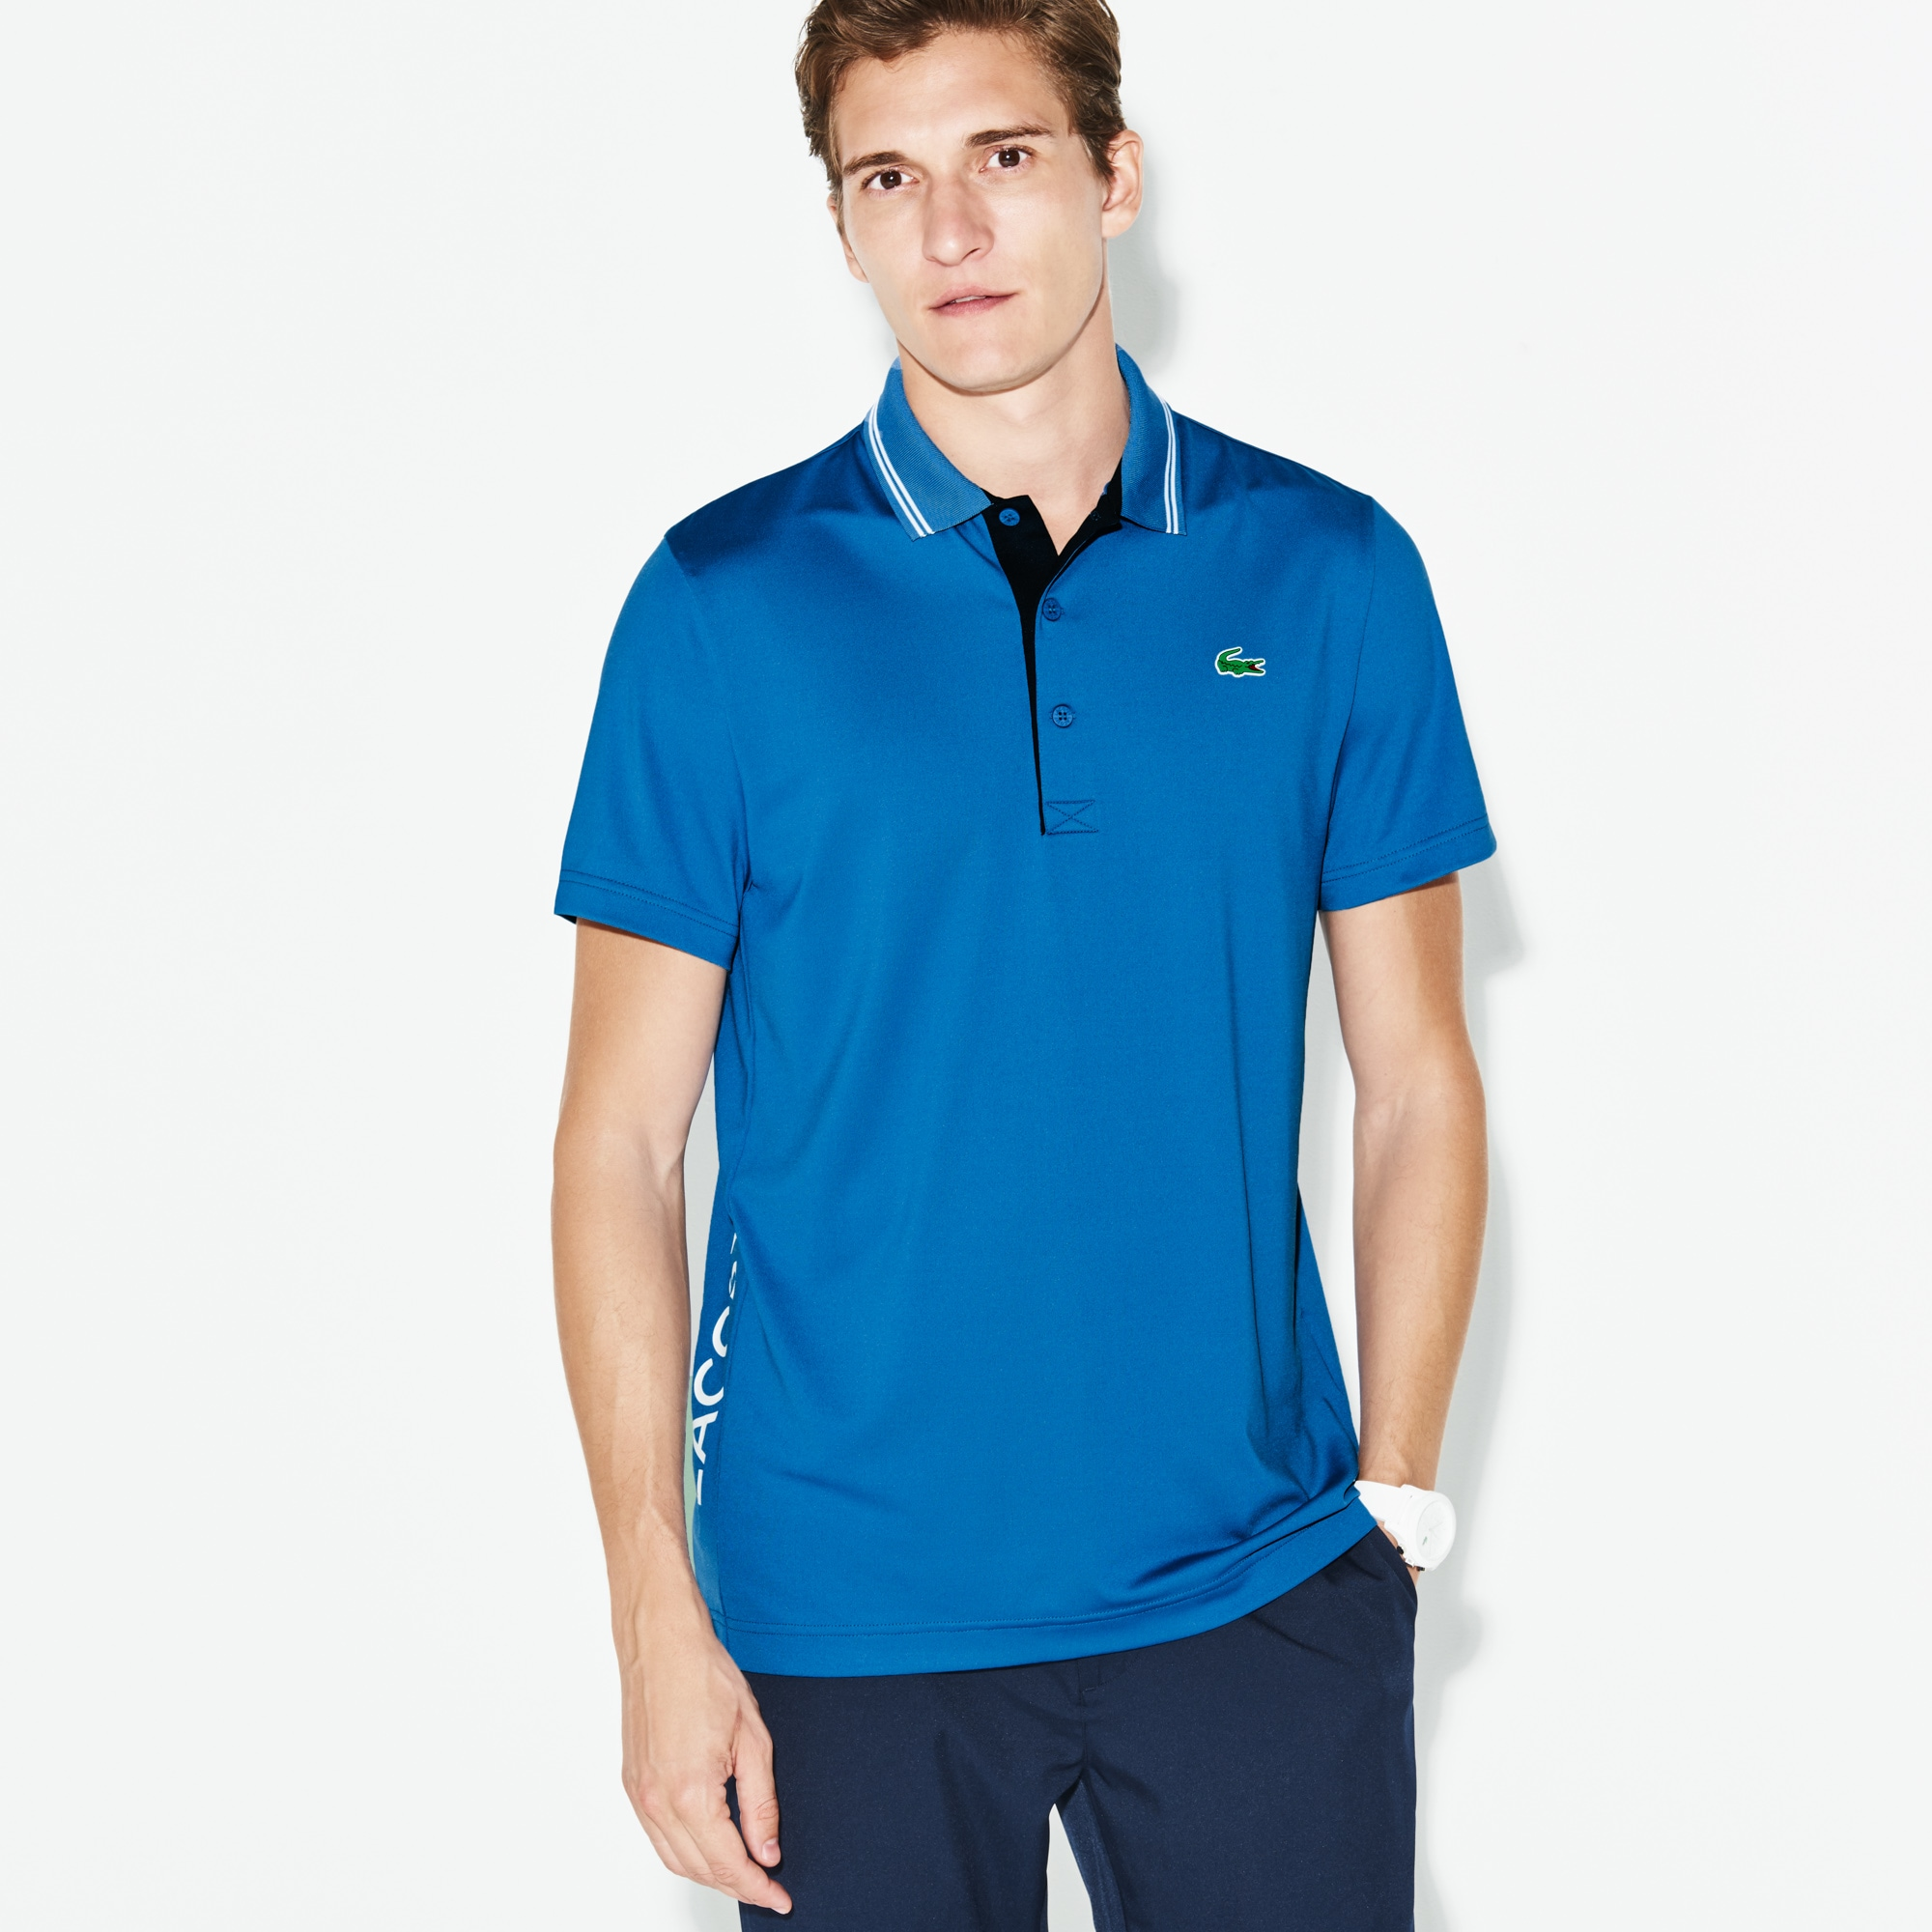 Men's SPORT Lettering Stretch Technical Jersey Golf Polo